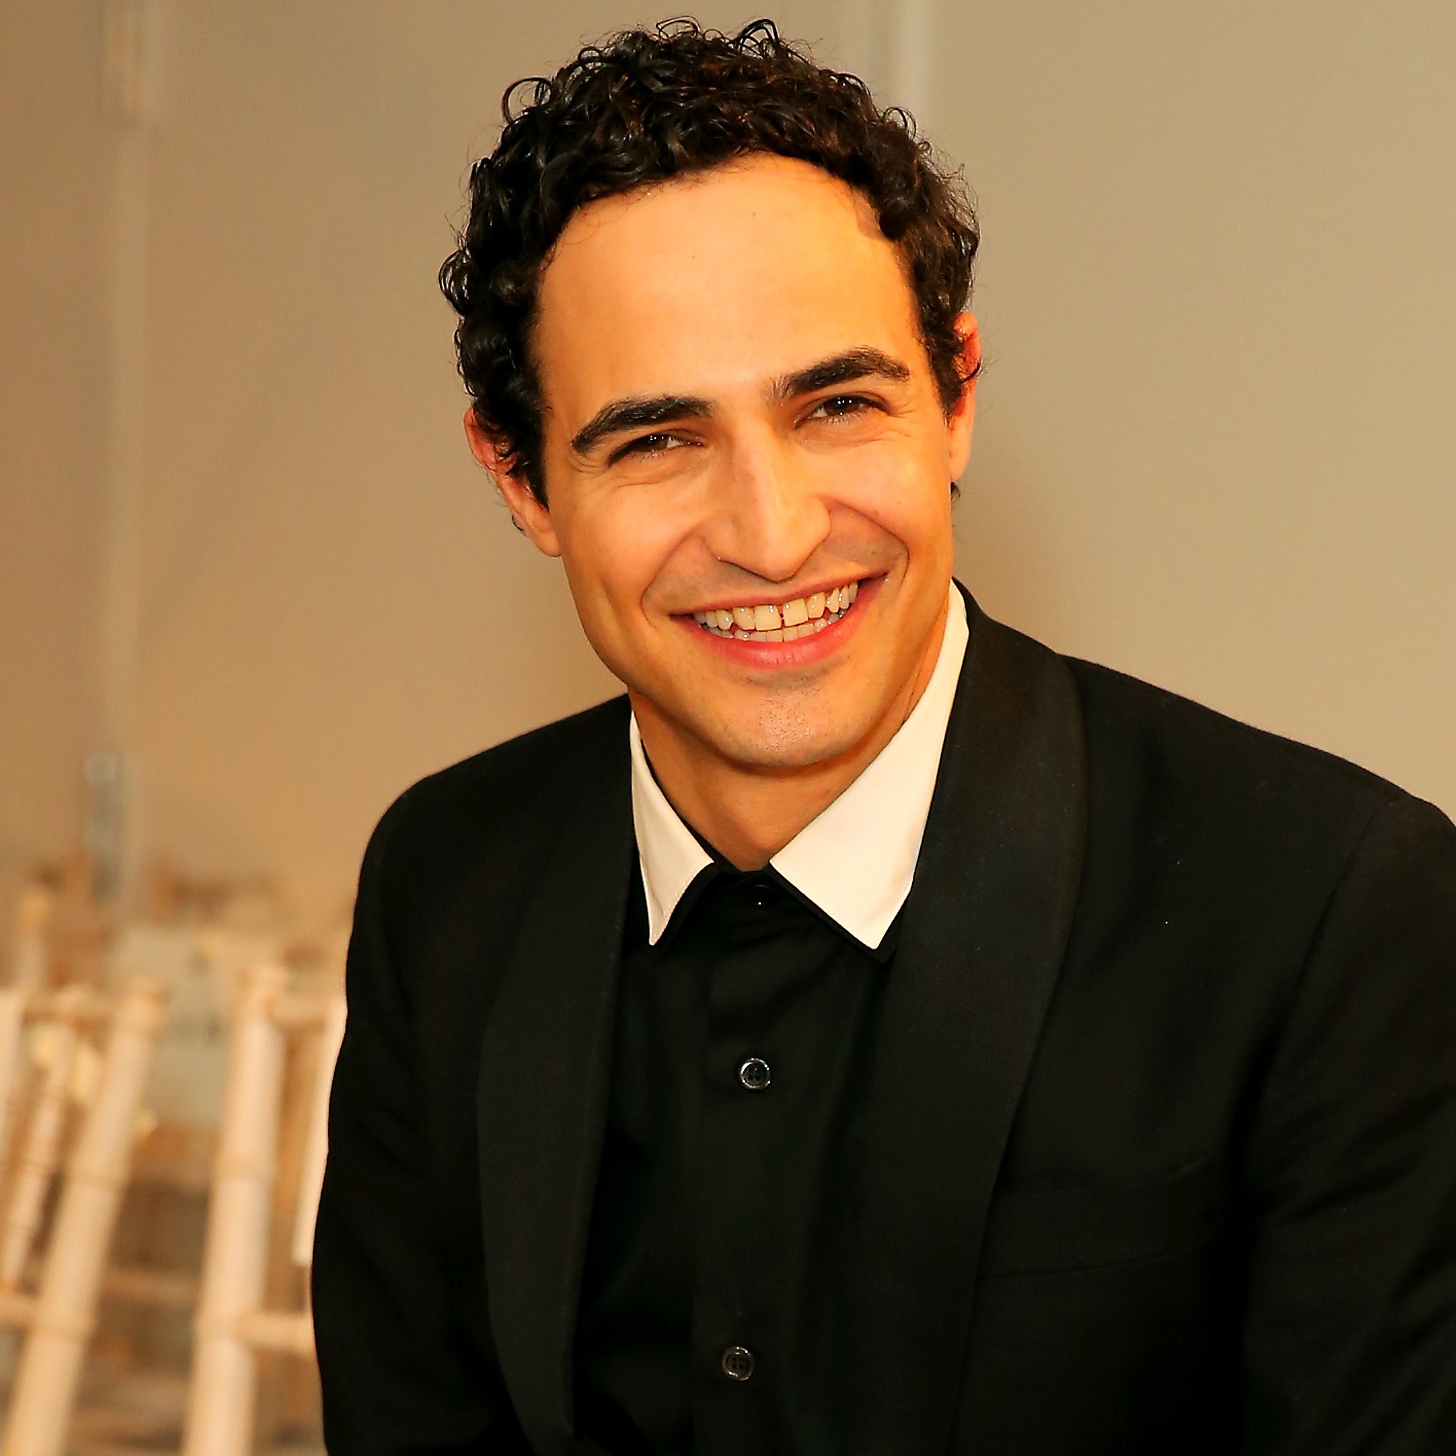 Zac Posen earned a  million dollar salary, leaving the net worth at 15 million in 2017